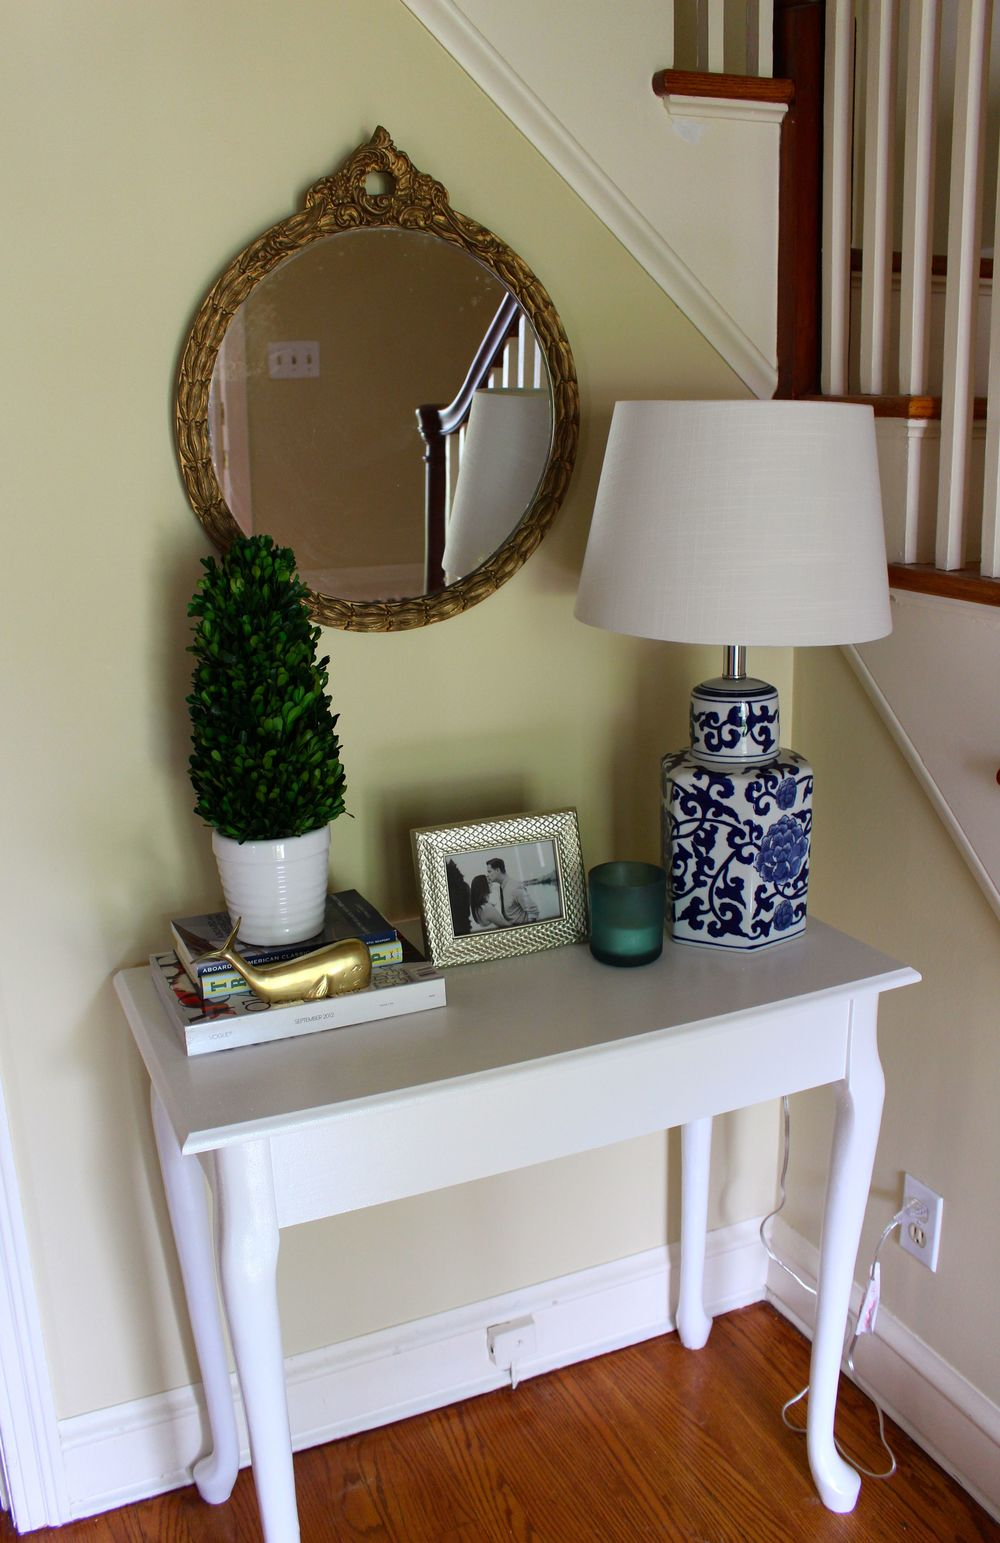 This table was Chris' grandma's old makeup table... we flipped the top around to cover mirror holes and painted it!